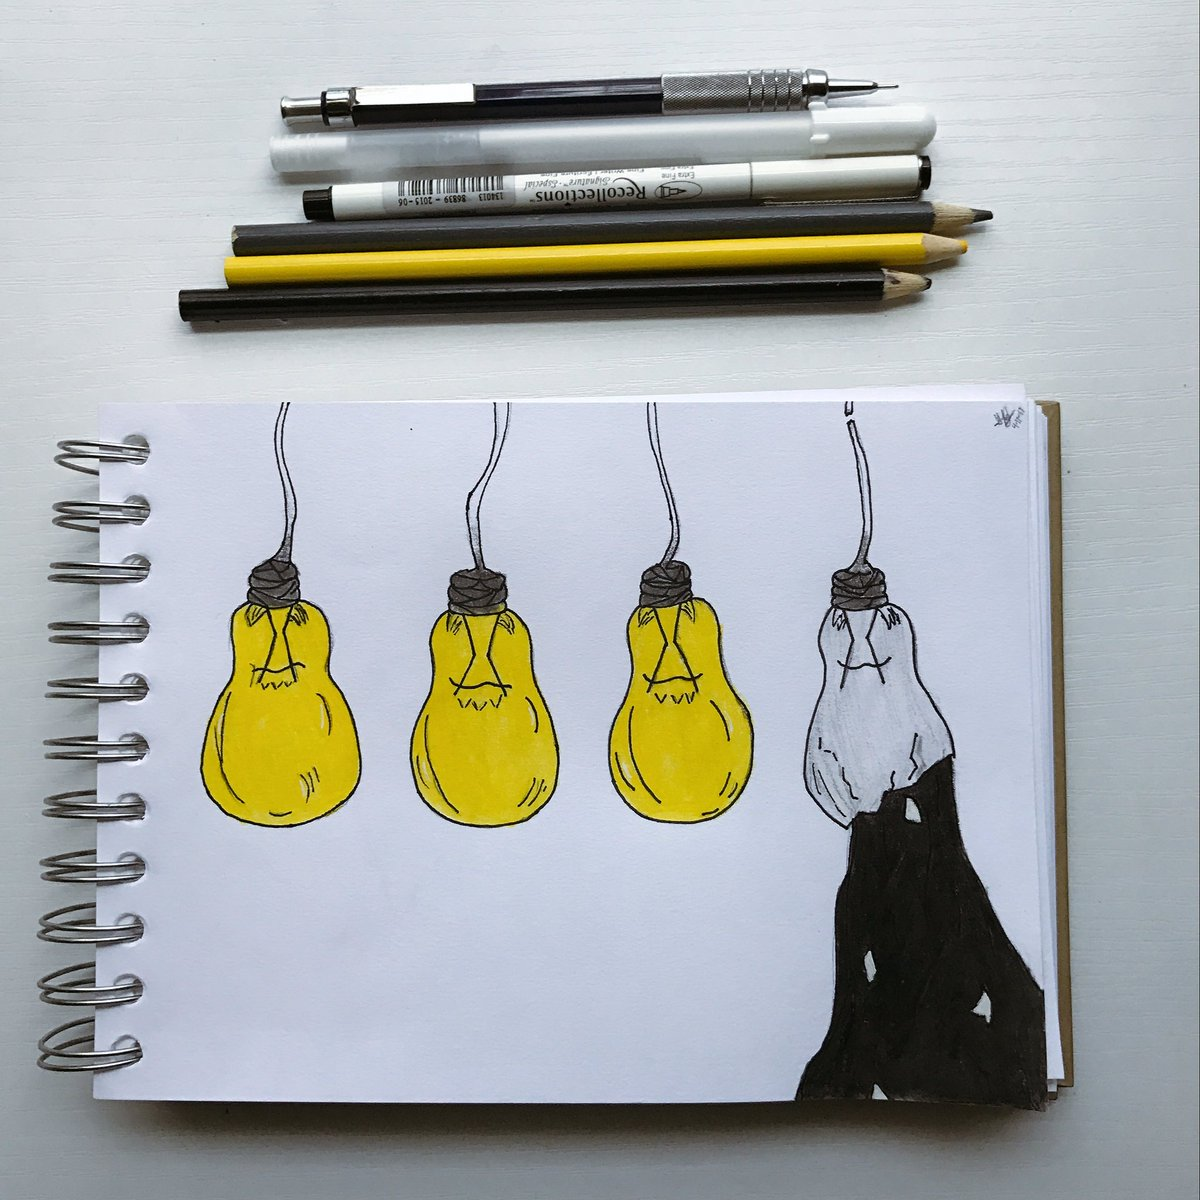 :;..Three lights are lit but the fourth one&#39;s out..;:  #cliqueart #tøp #clique #twentyonepilots #joshdun #tylerjoseph #twentyonepilotsart<br>http://pic.twitter.com/FGQXCO1Xdx